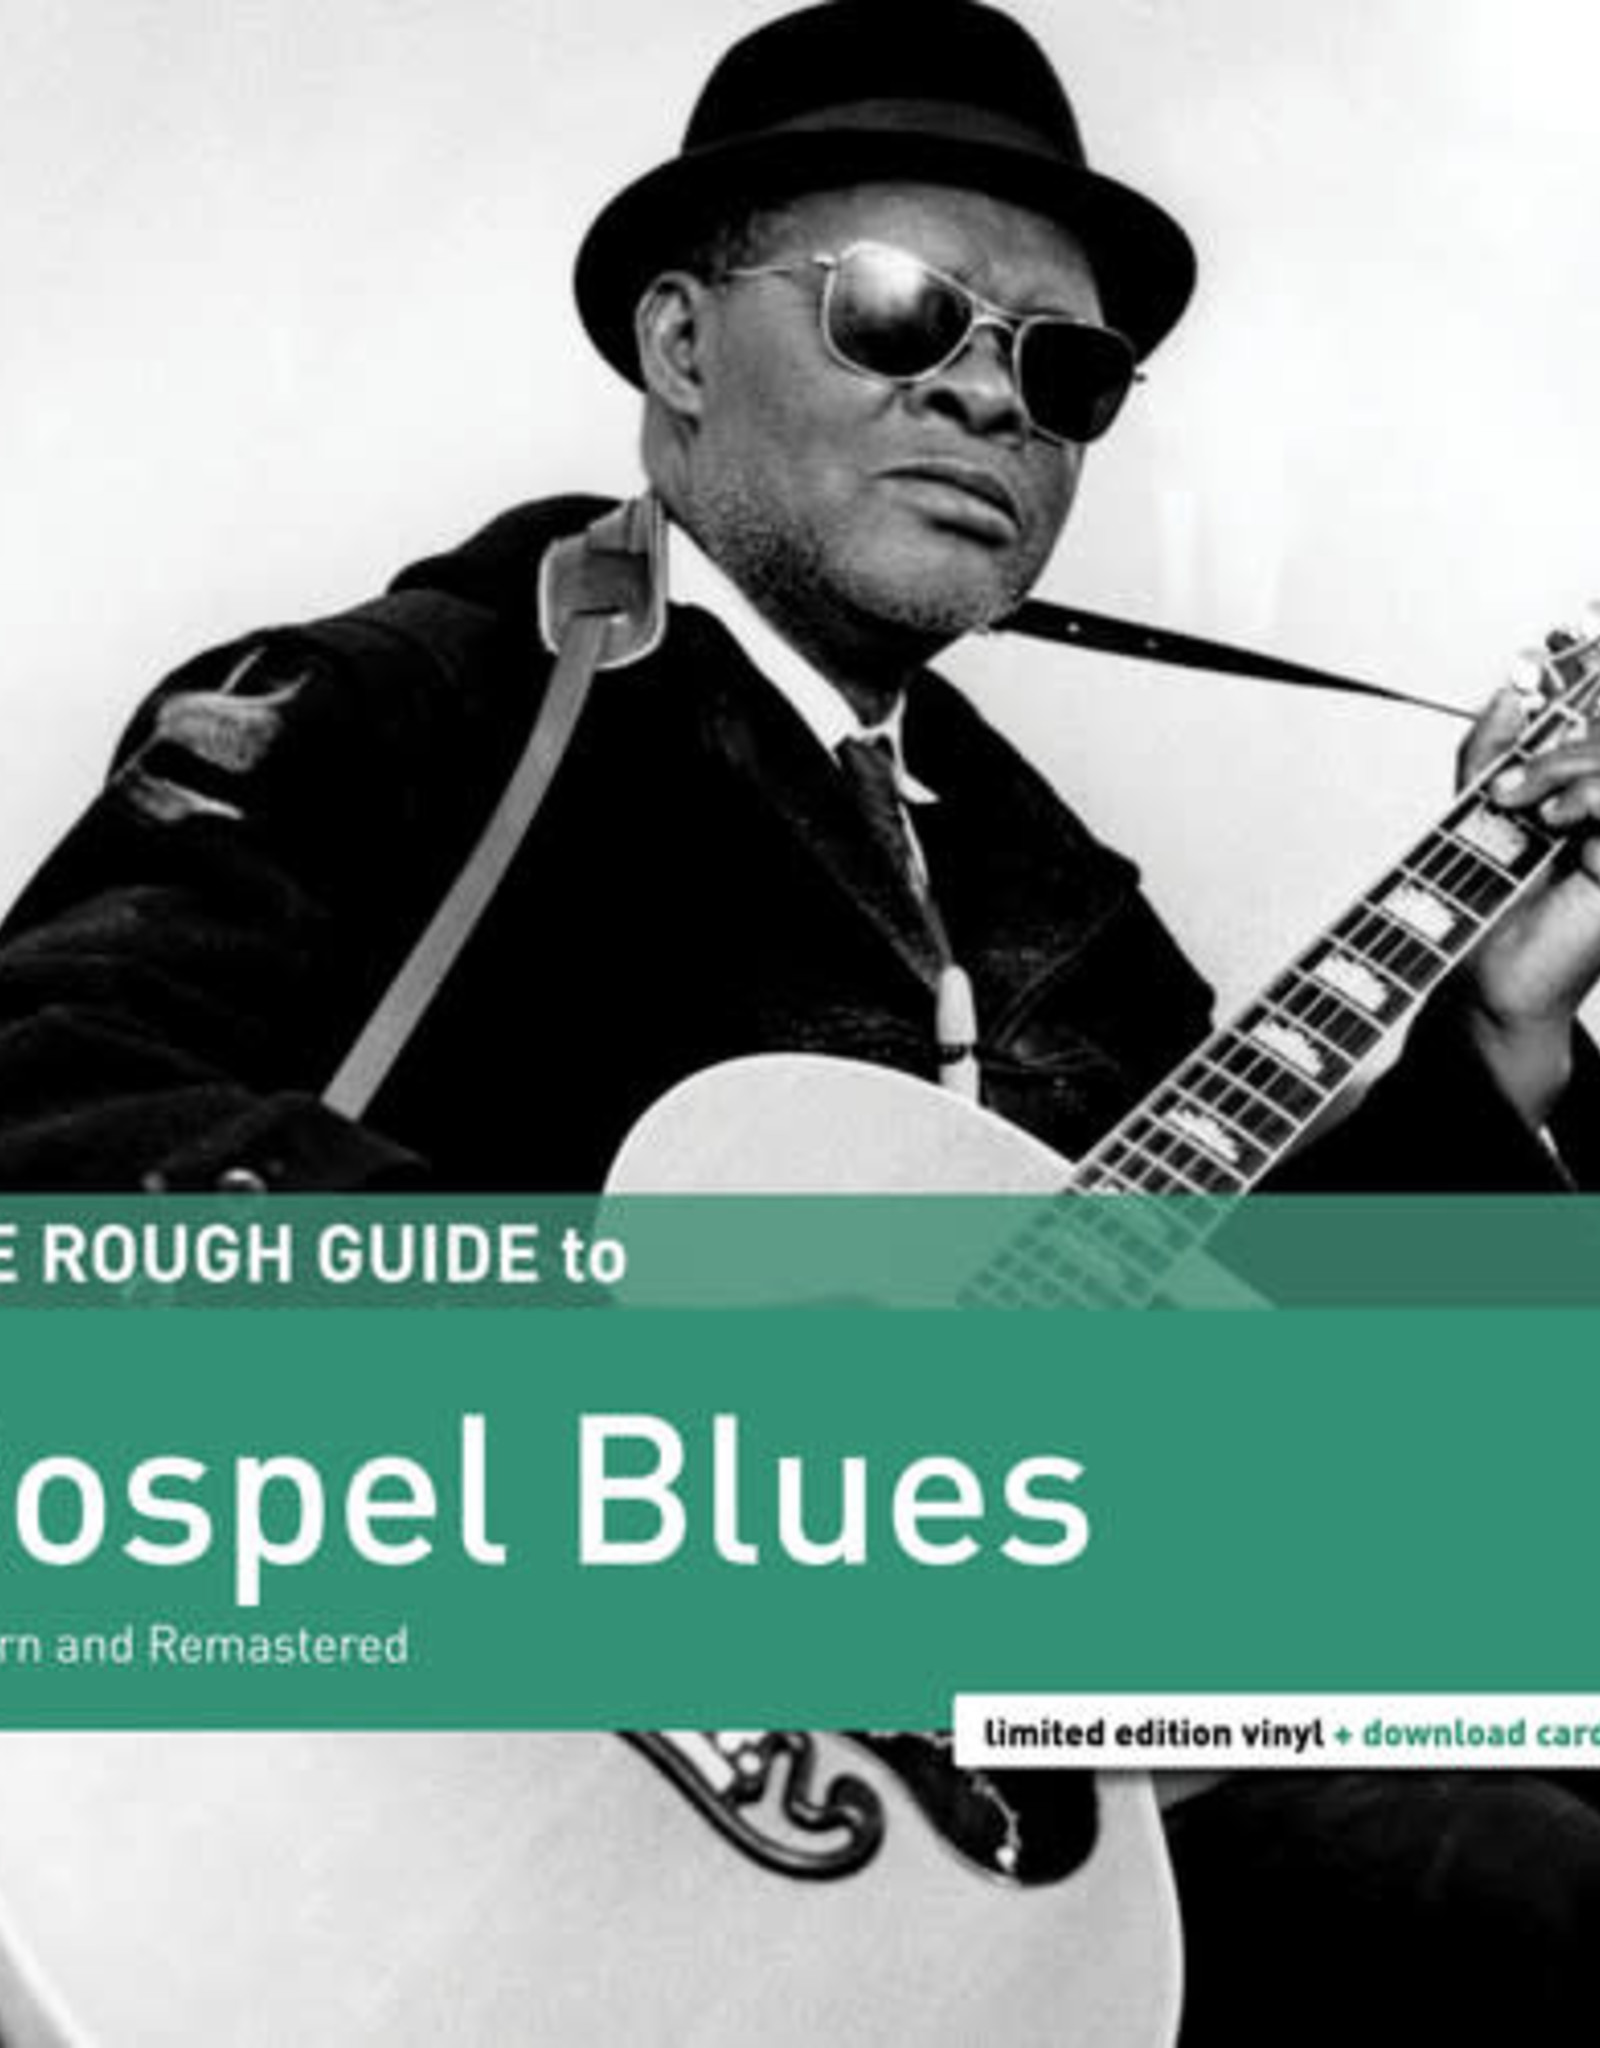 Rough Guide to Gospel Blues